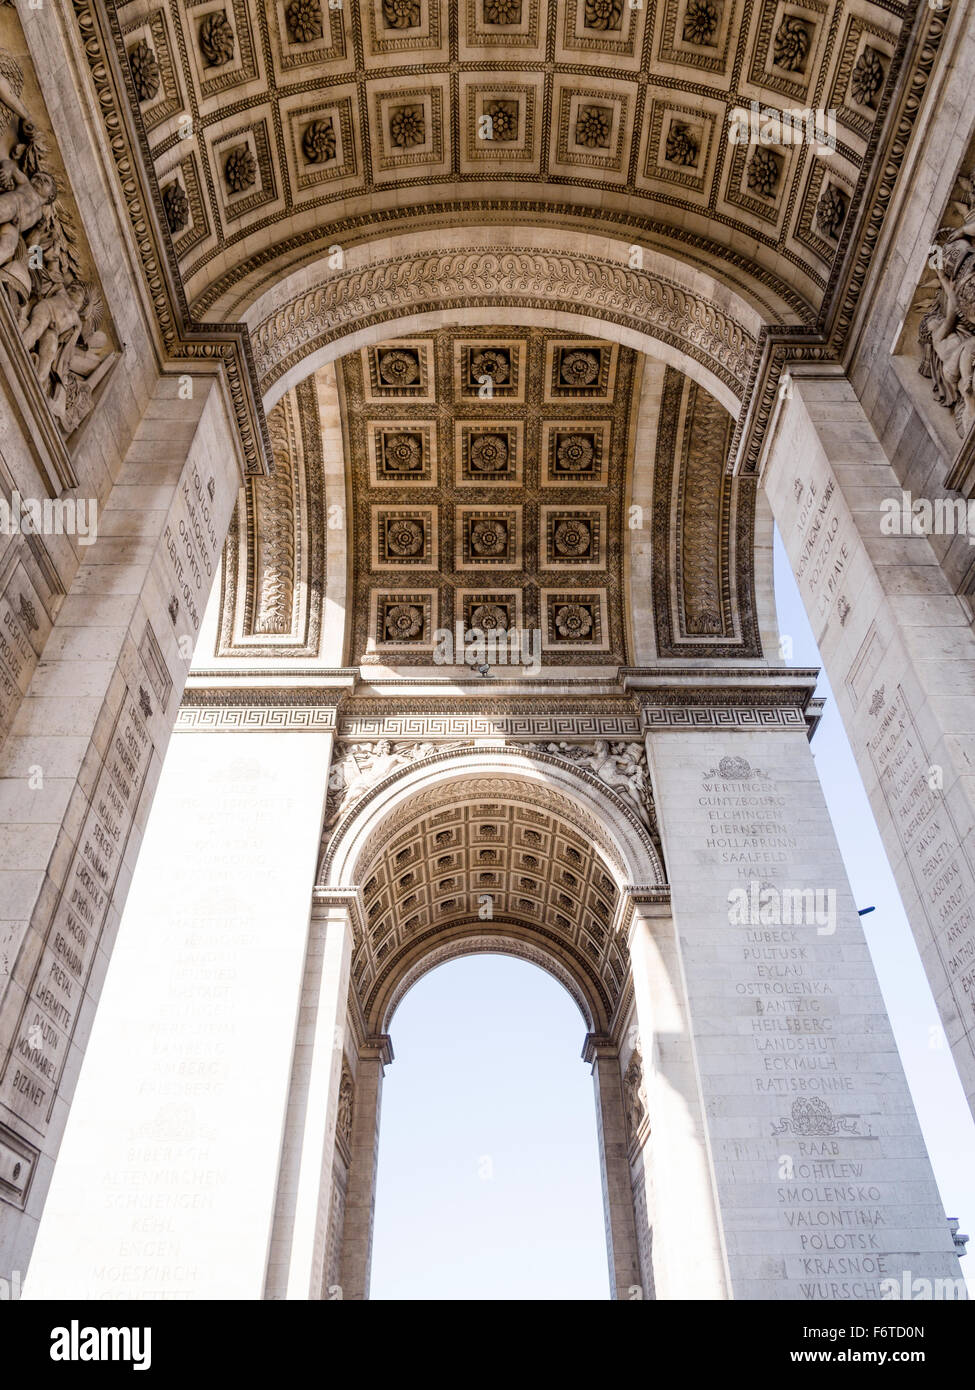 Under the Arch. The detailed decorative work under the Arc de Triomphe in Paris. - Stock Image